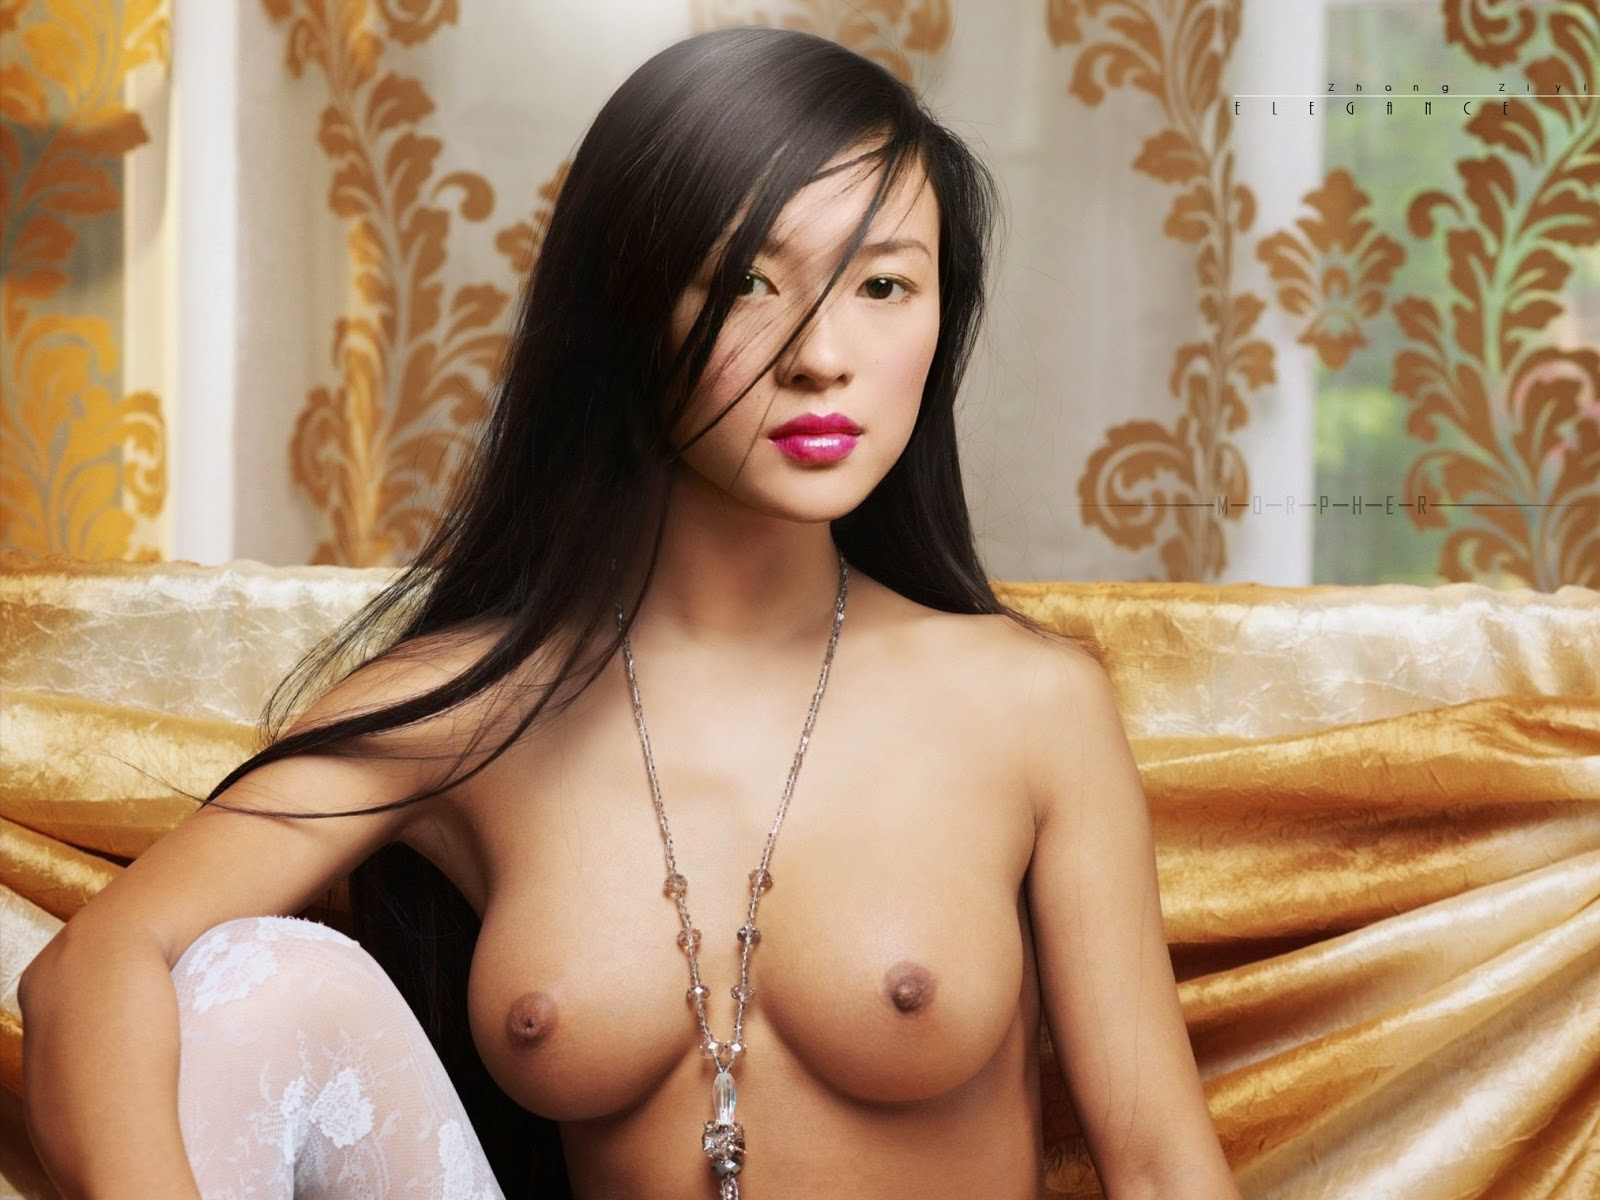 Chinese erotic photos